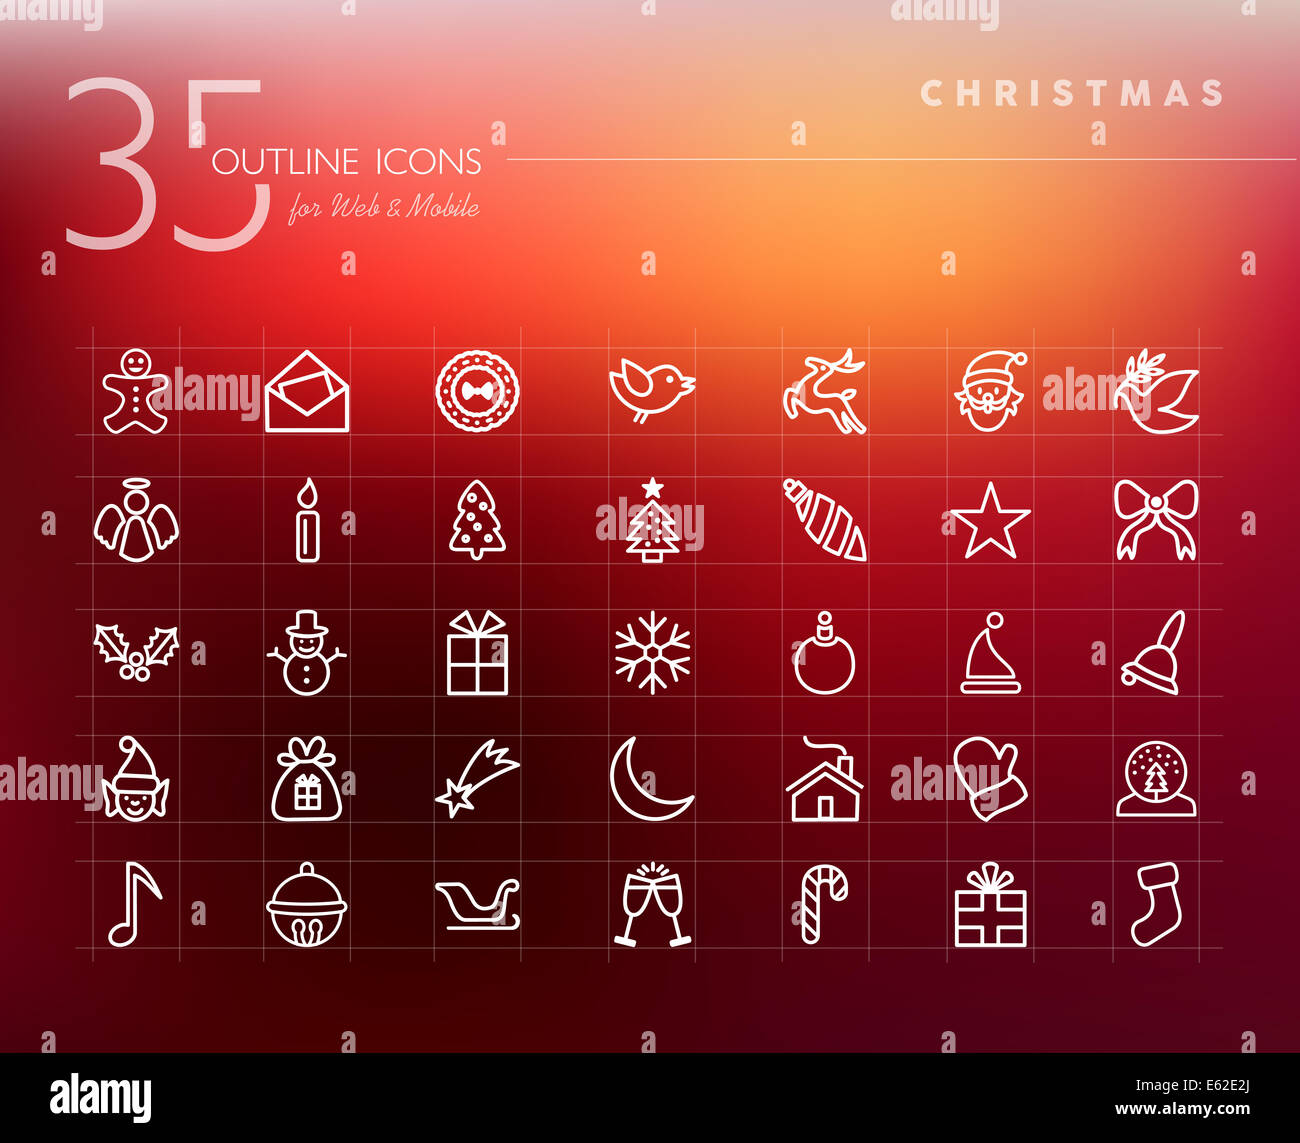 App Weihnachtsbilder.Christmas Bauble Vector Icons Set Stock Photos Christmas Bauble